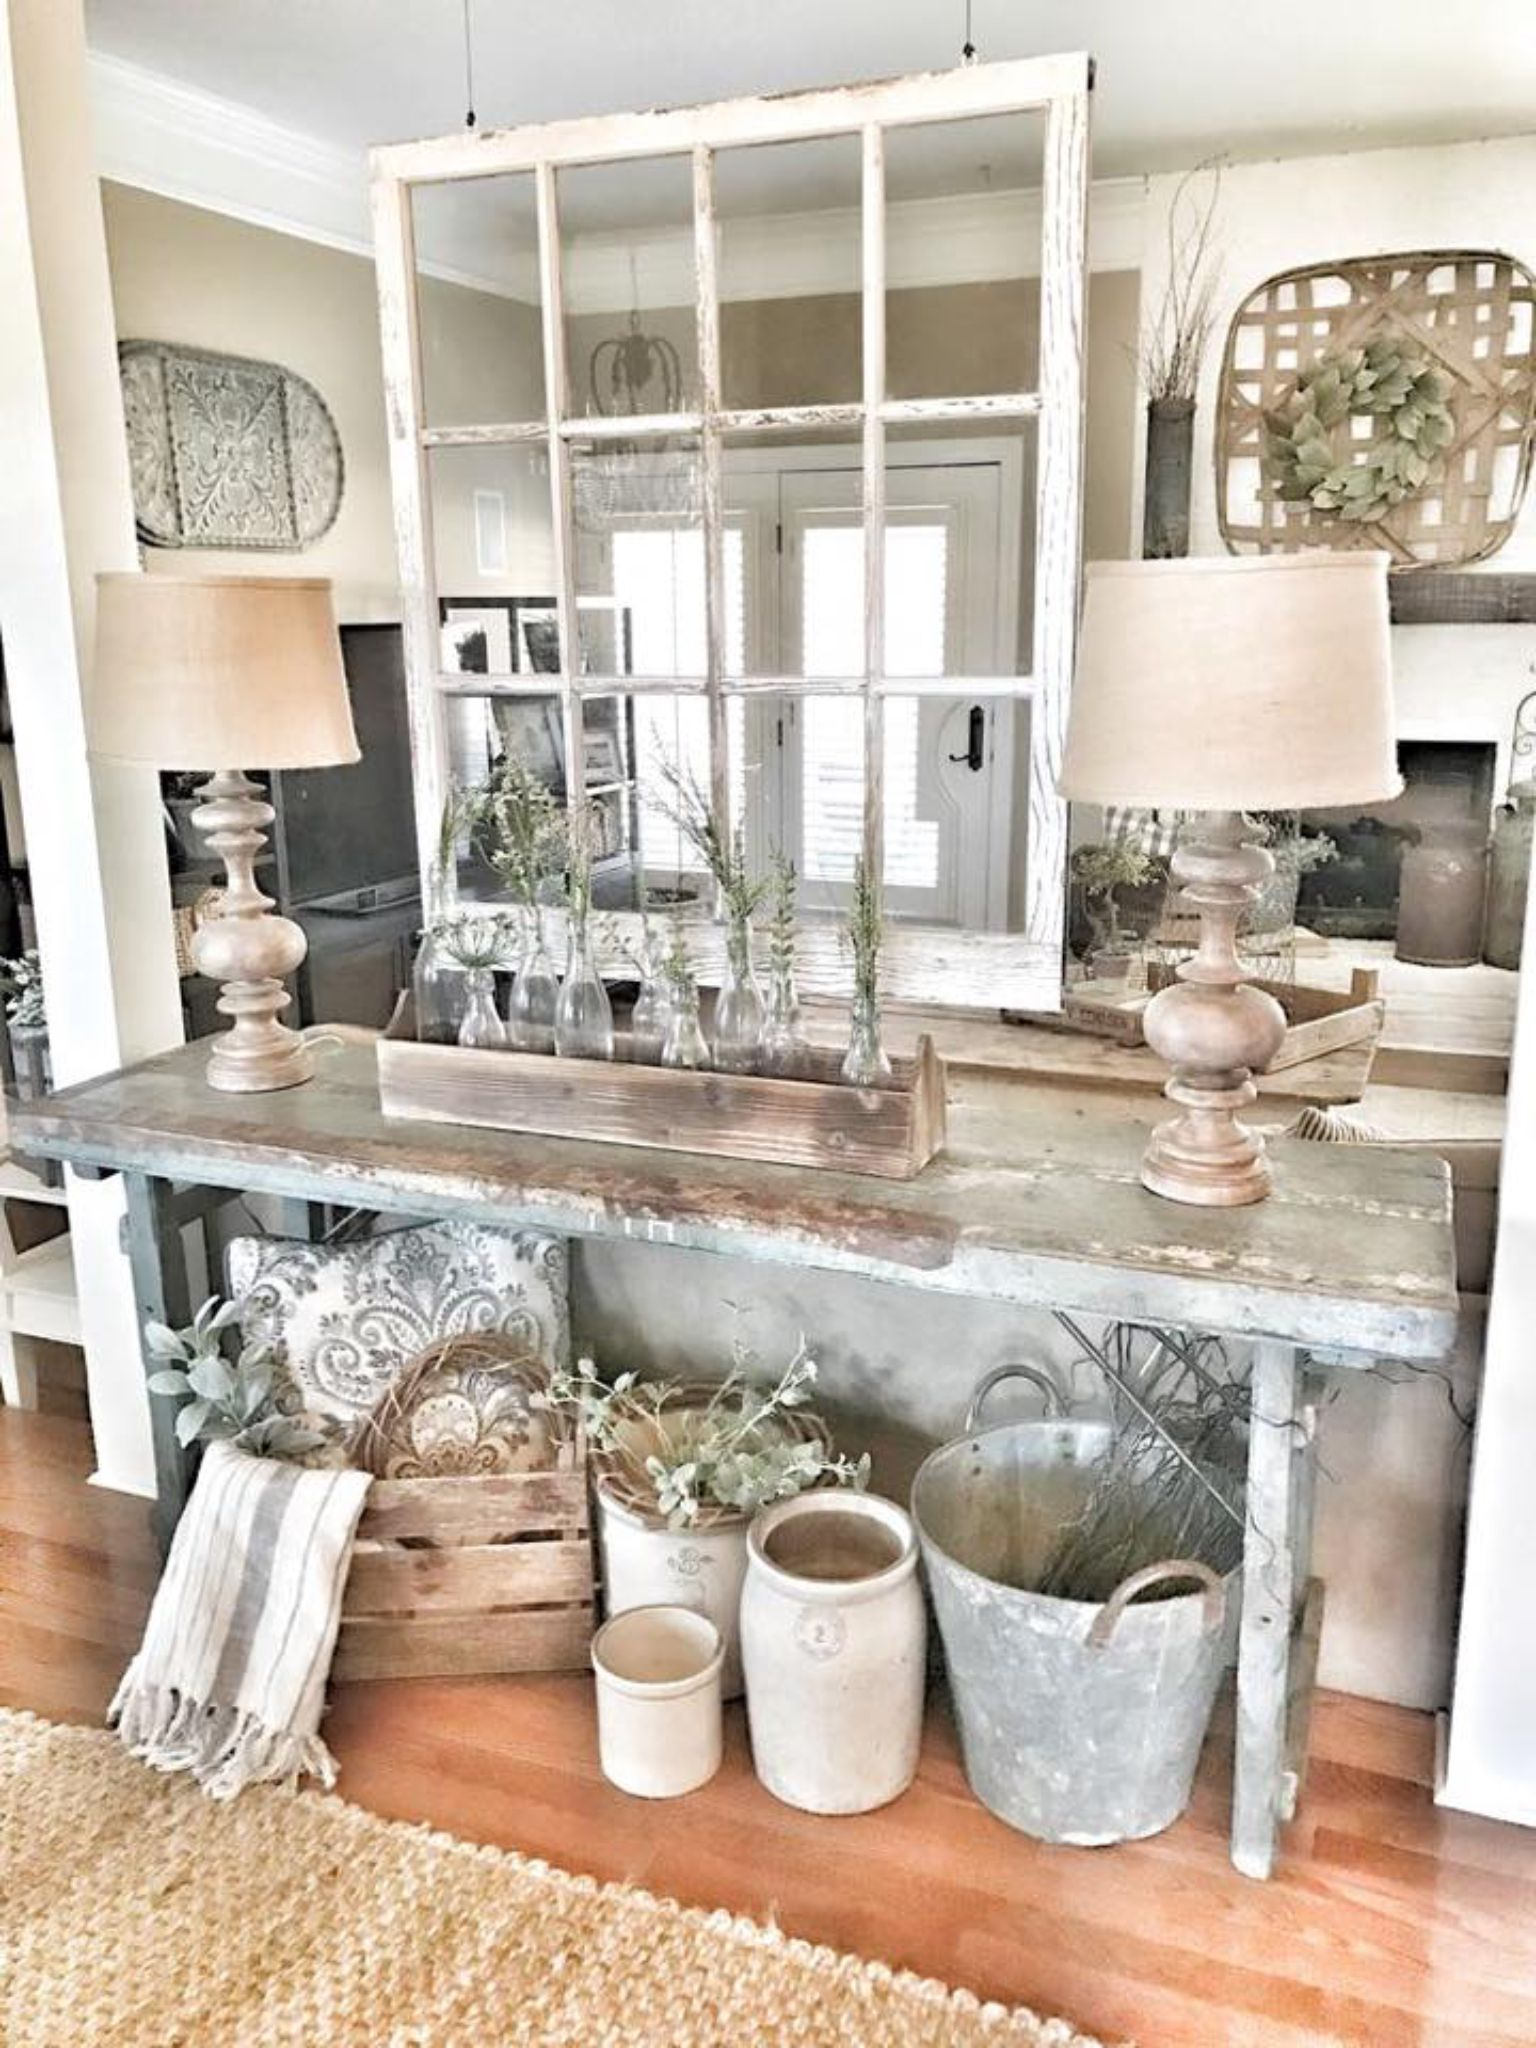 Pin By Mary Mills On Decor Rustic Farmhouse Living Room Farmhouse Decor Living Room Farm House Living Room